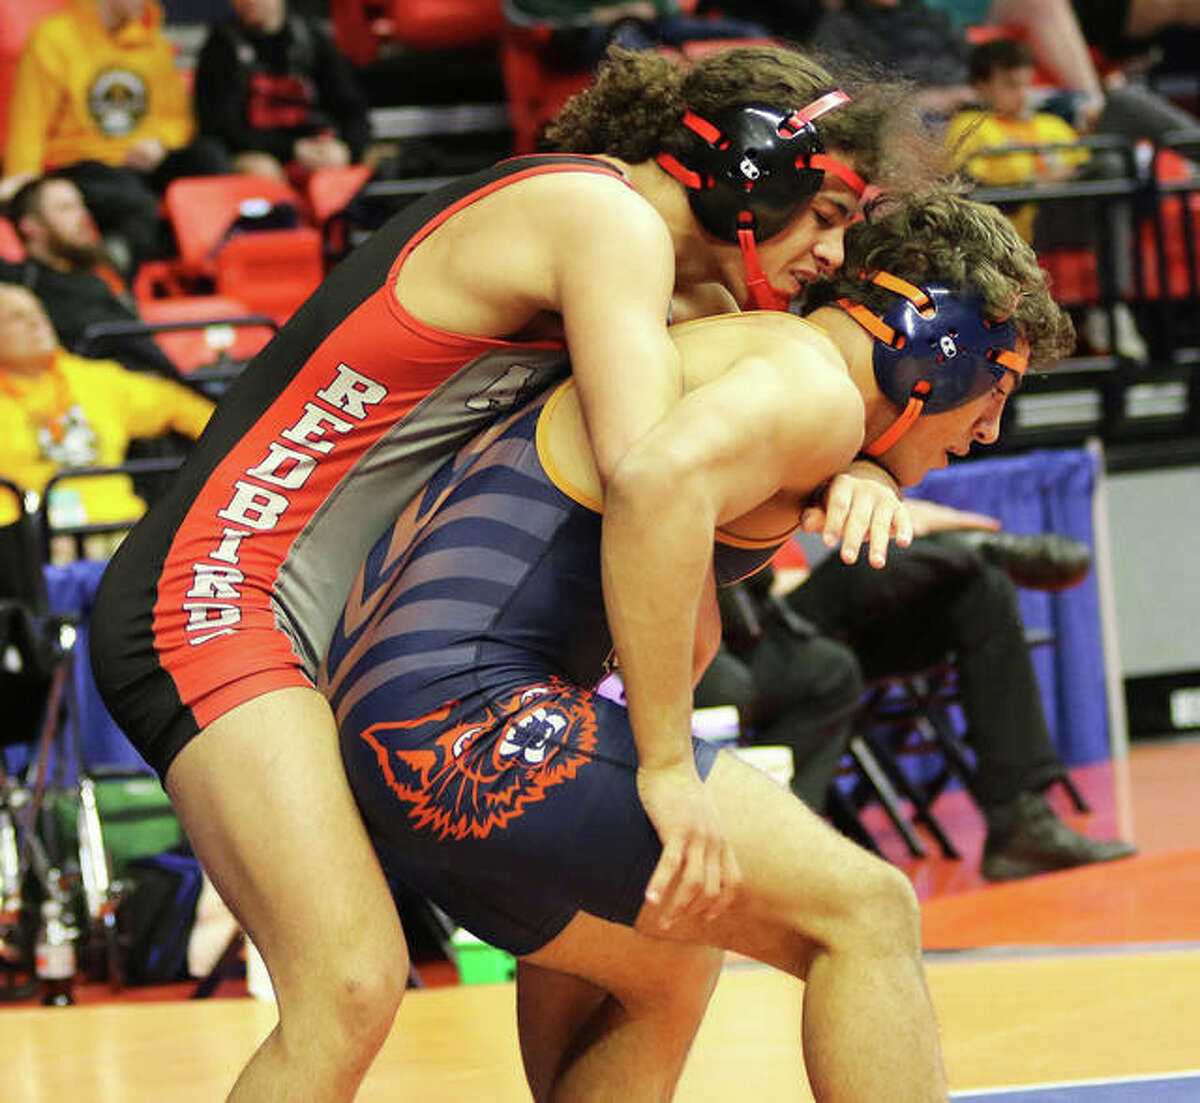 Alton's Damien Jones (left) tries to keep Evanston's Ricardo Salinas from escaping during a 170-pound wrestleback quarterfinal Saturday morning in the Class 3A state tournament at State Farm Center in Champaign.